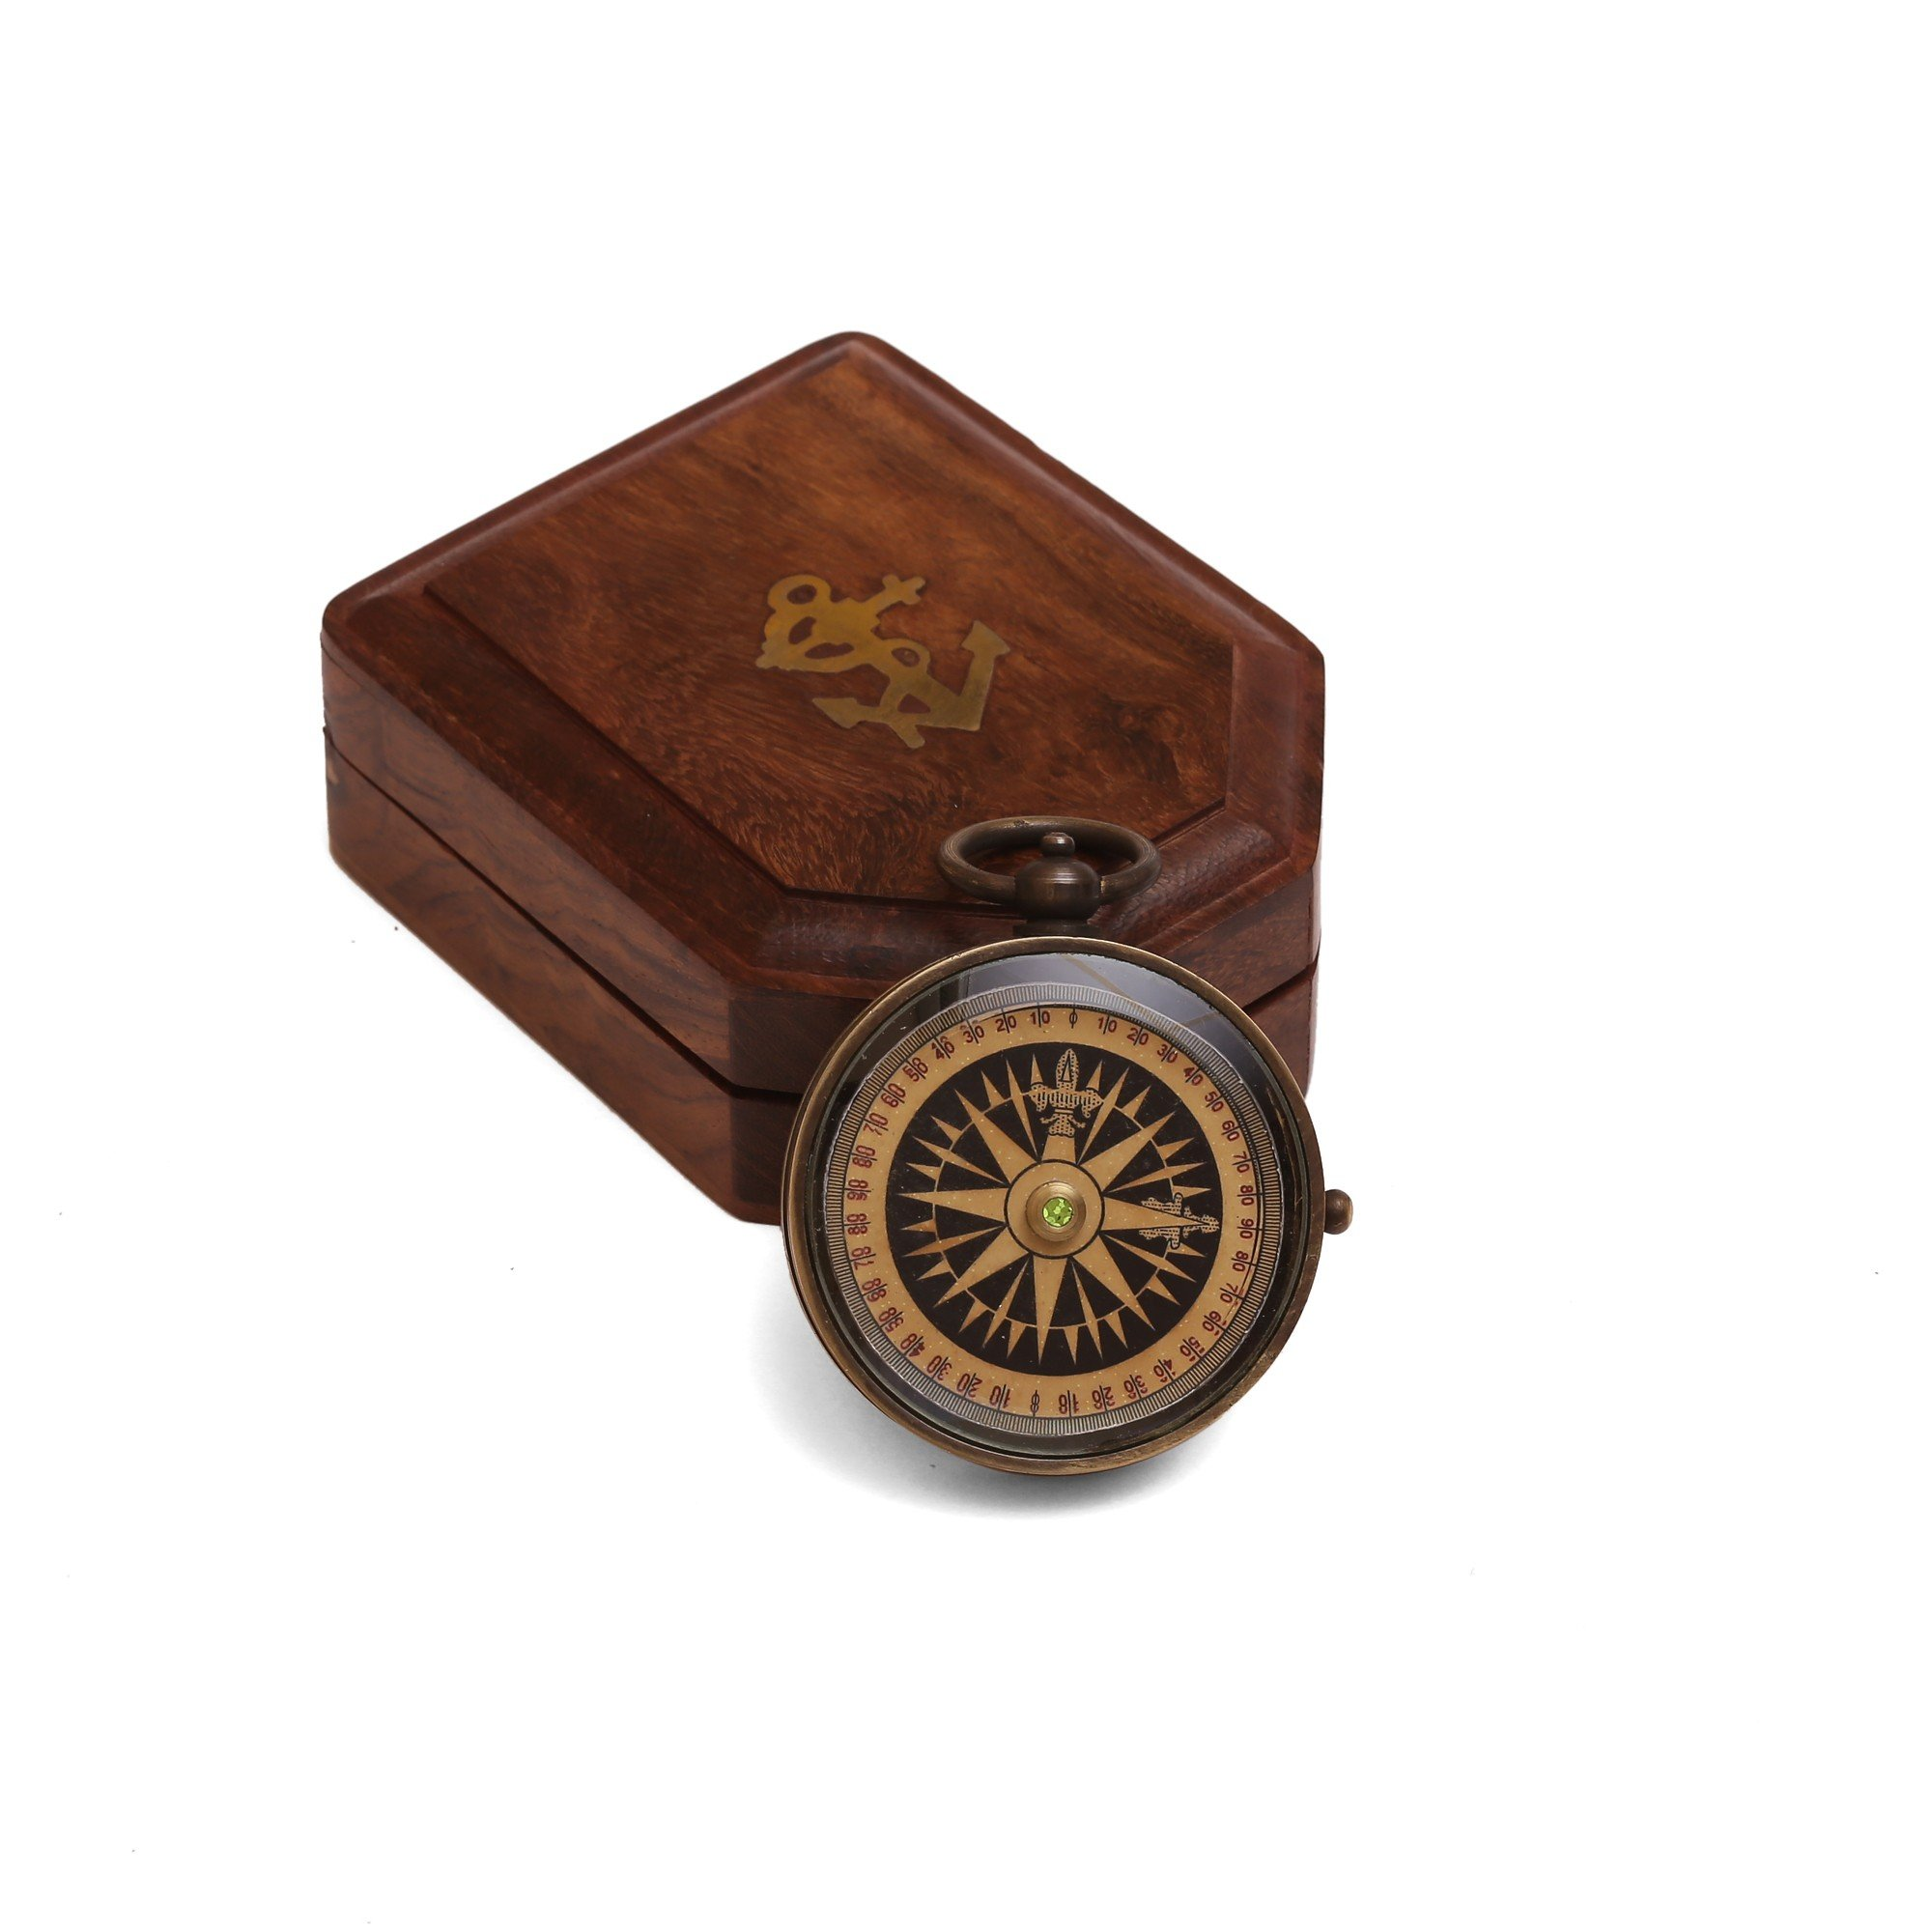 ShalinIndia Antique Floating Dial Pocket Watch - 2.2'' - Brass Compass - Travel Accessories